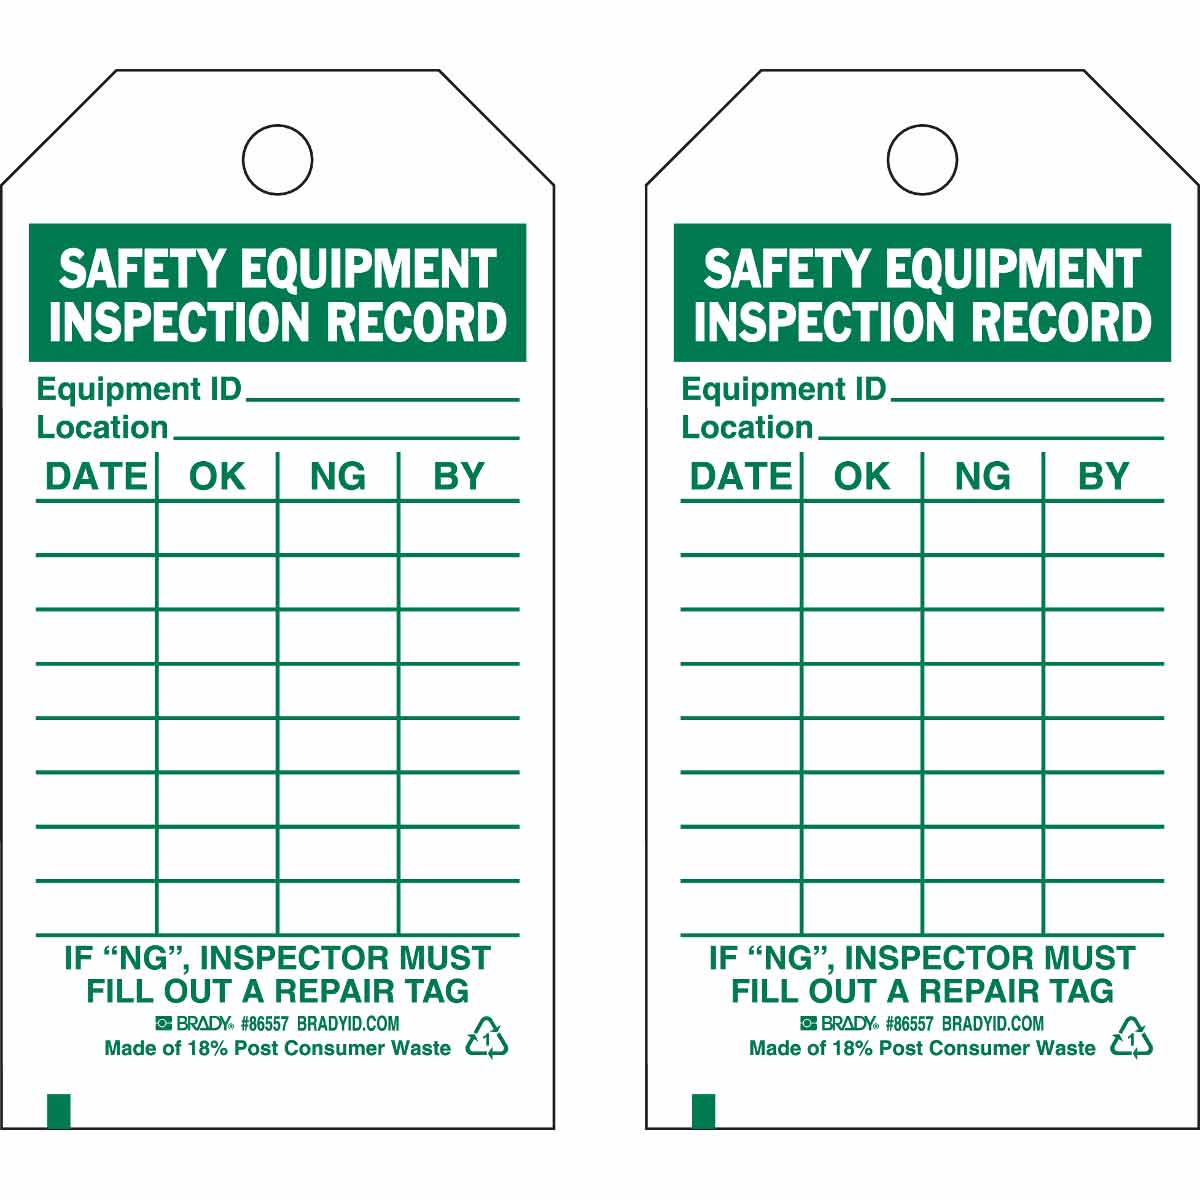 Inspection Material Control Tags SAFETY EQUIPMENT INSPECTION RECORD ID LOCATION DATE